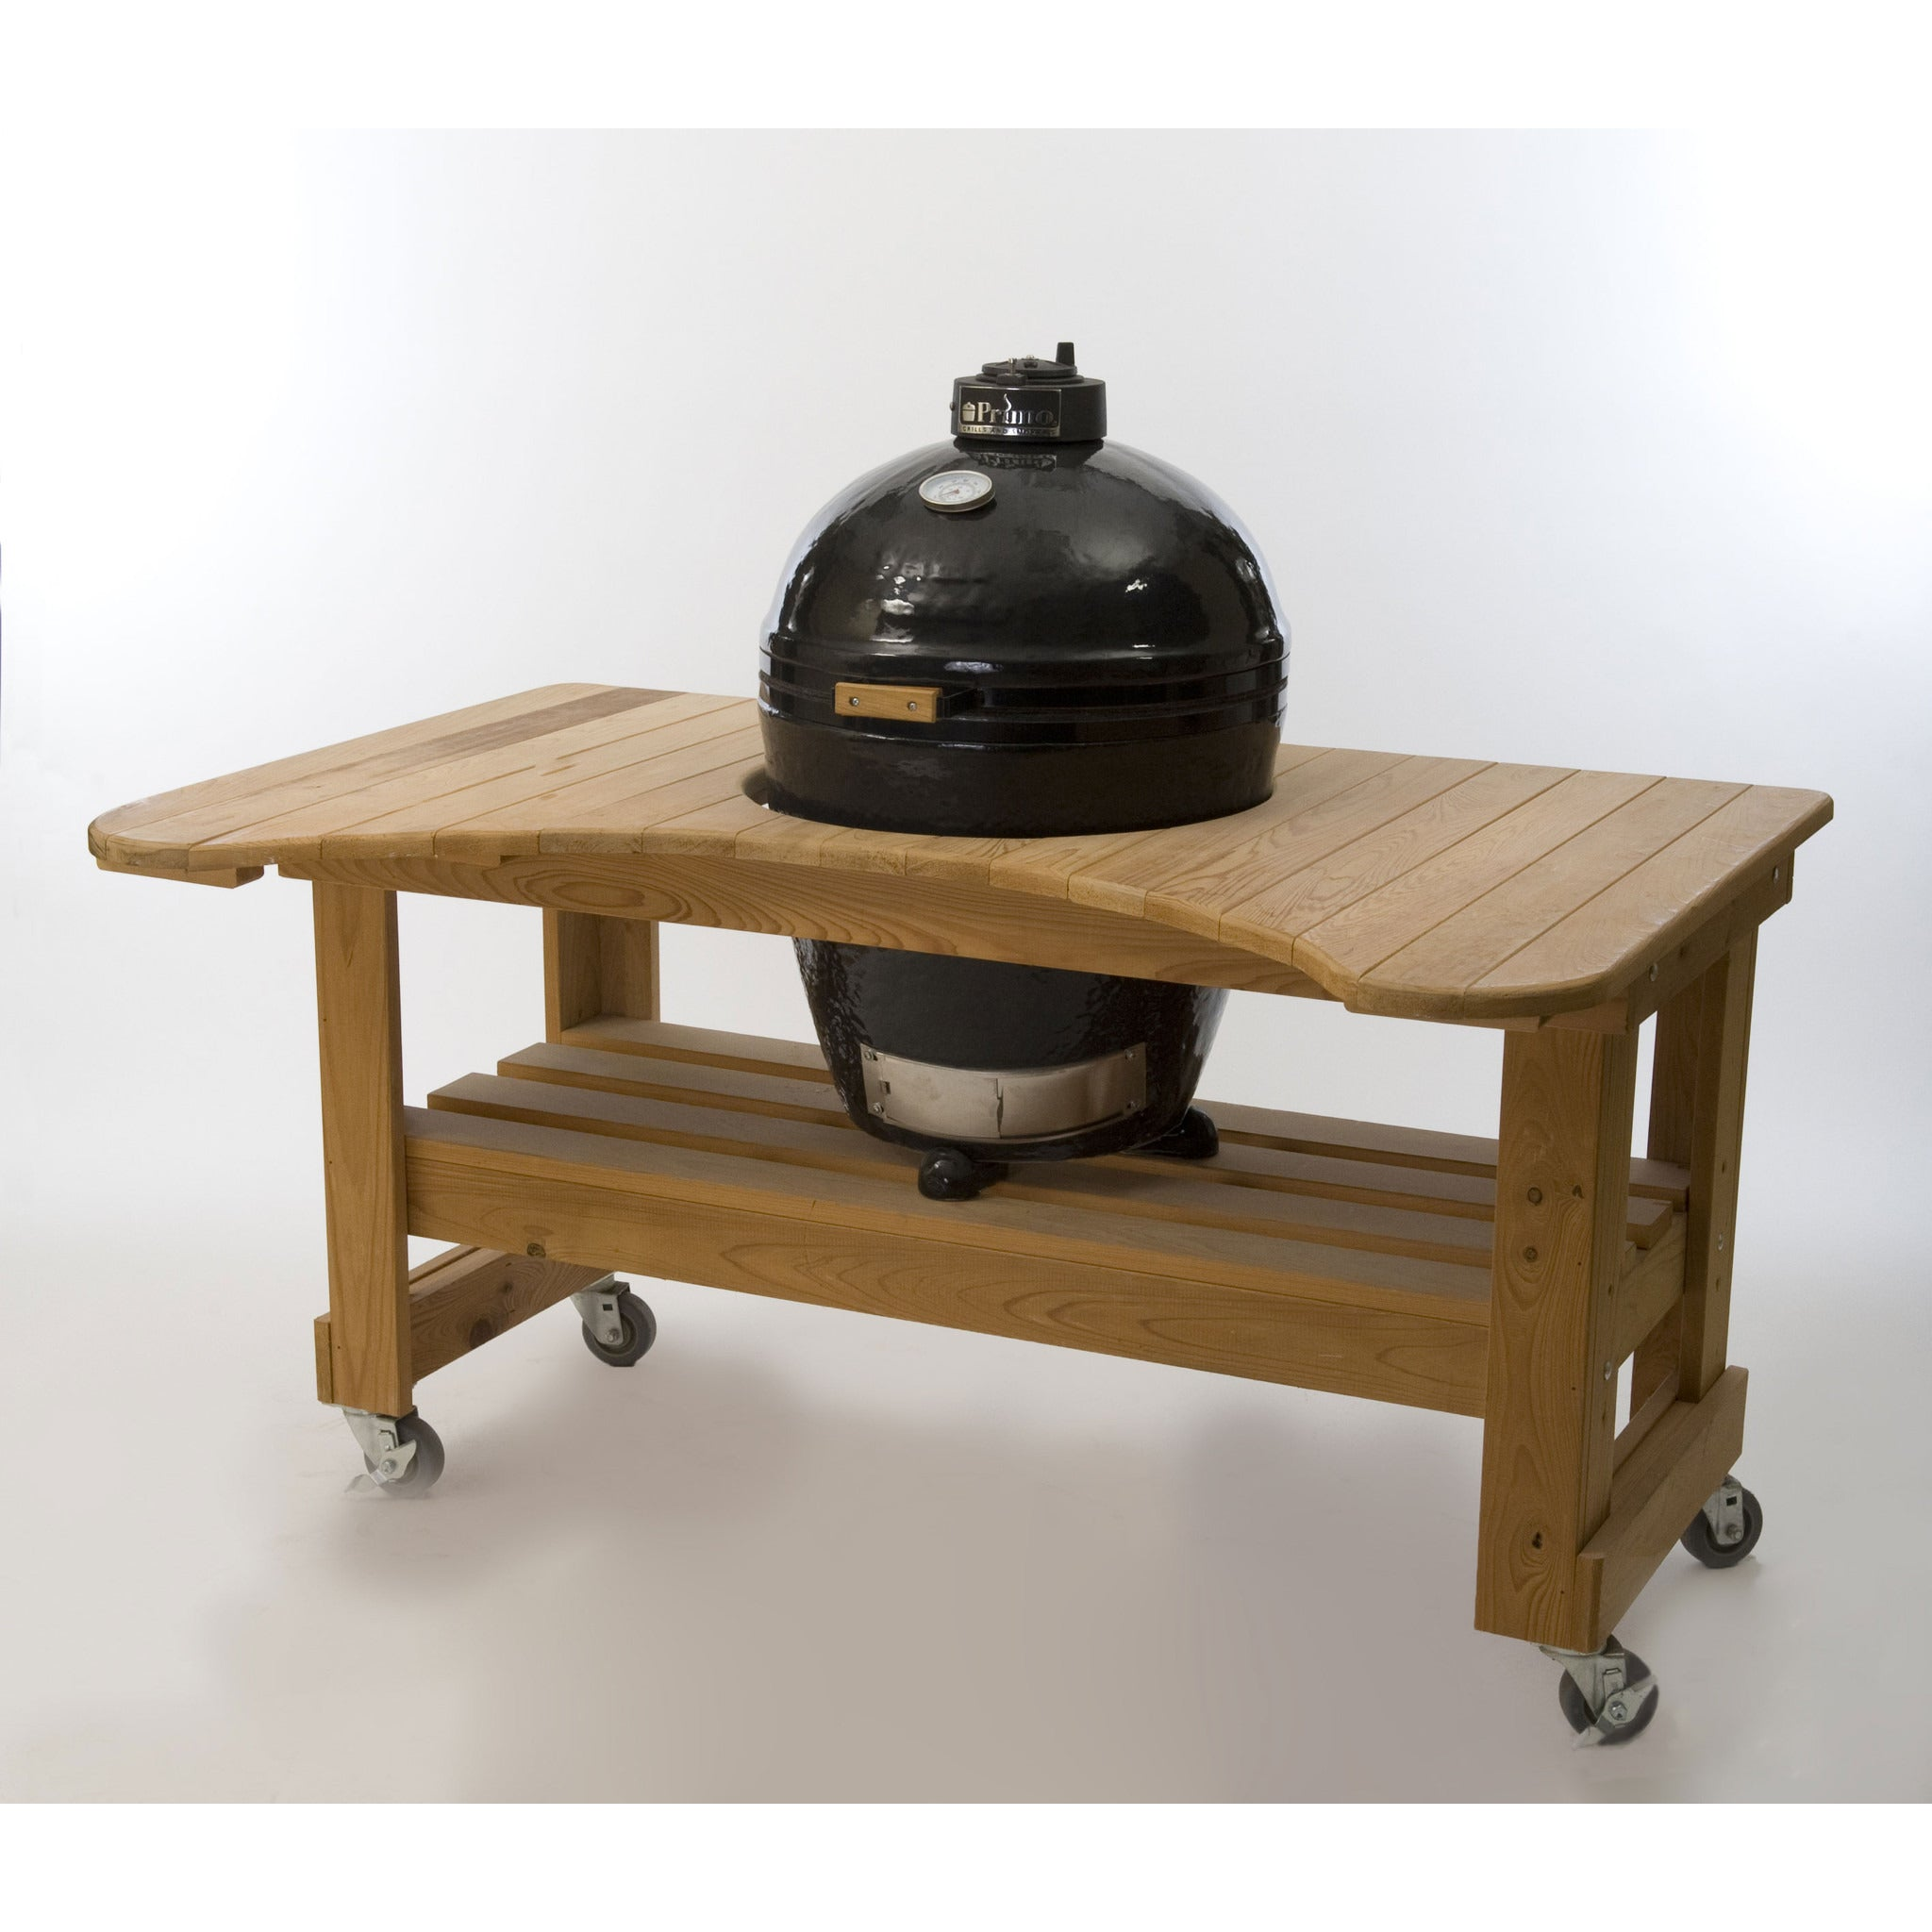 Primo Ceramic Charcoal All In One Kamado Grill Round Original